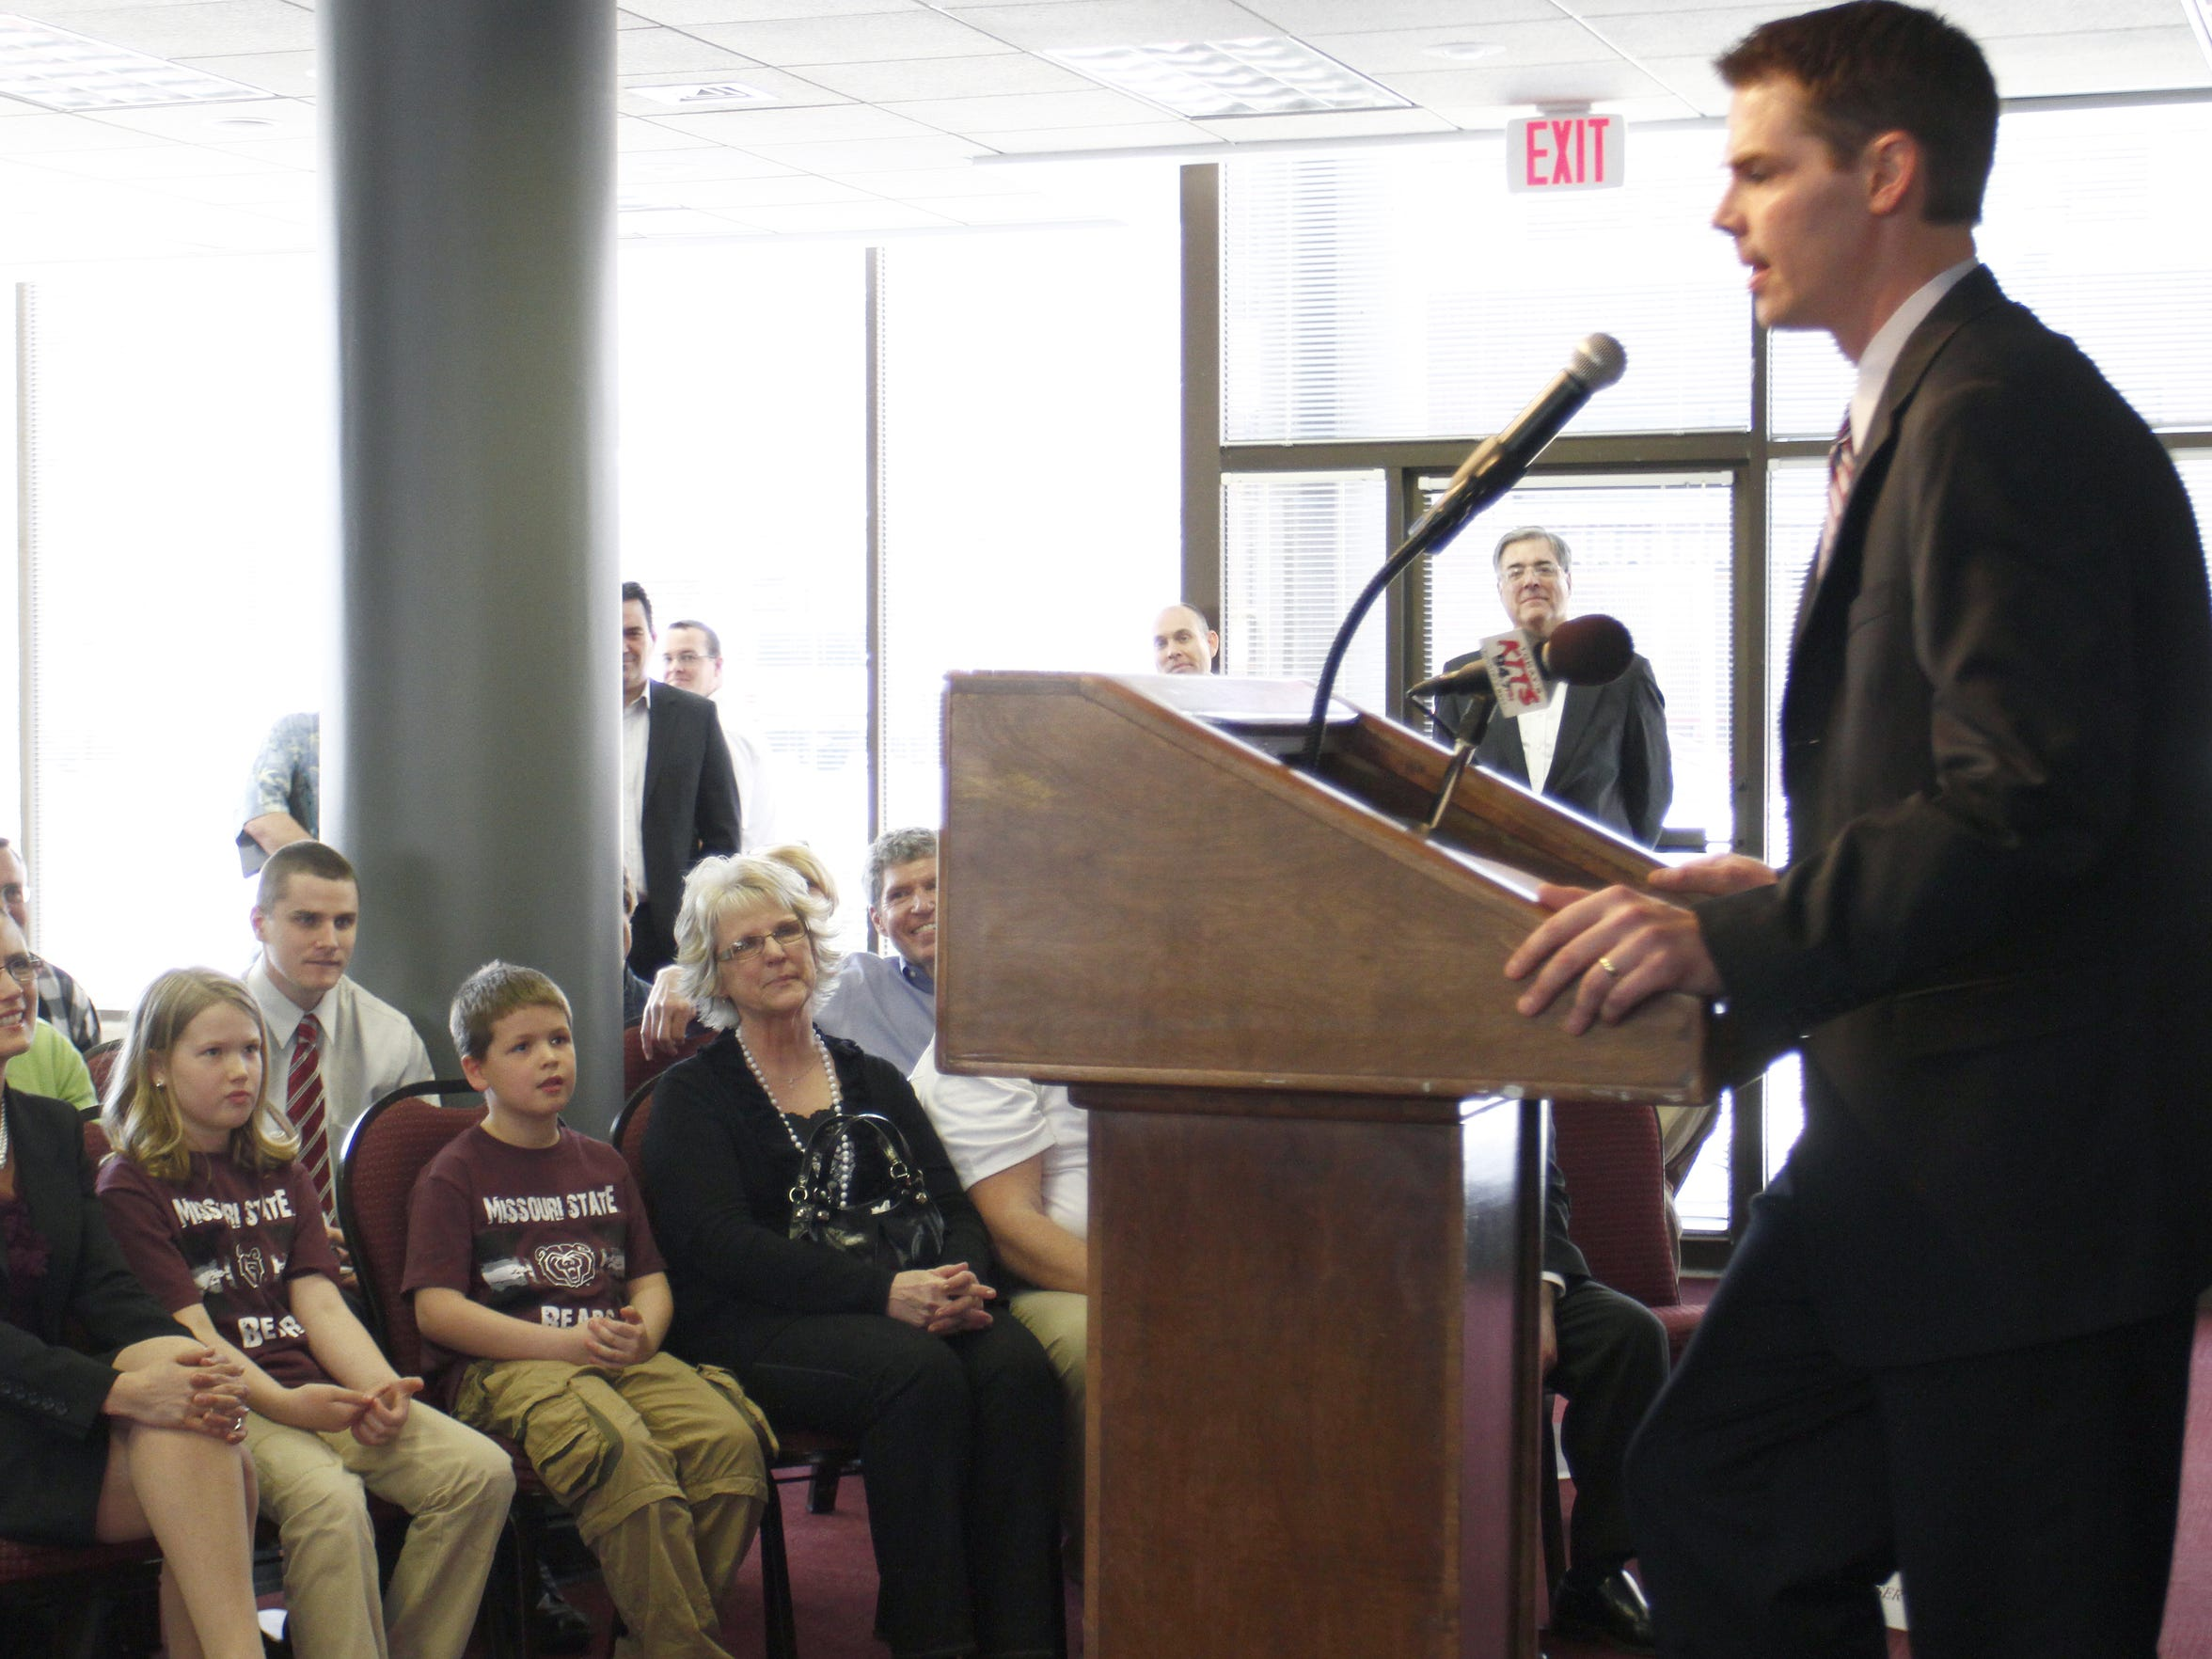 Paul Lusk, new basketball coach at Missour State speaks